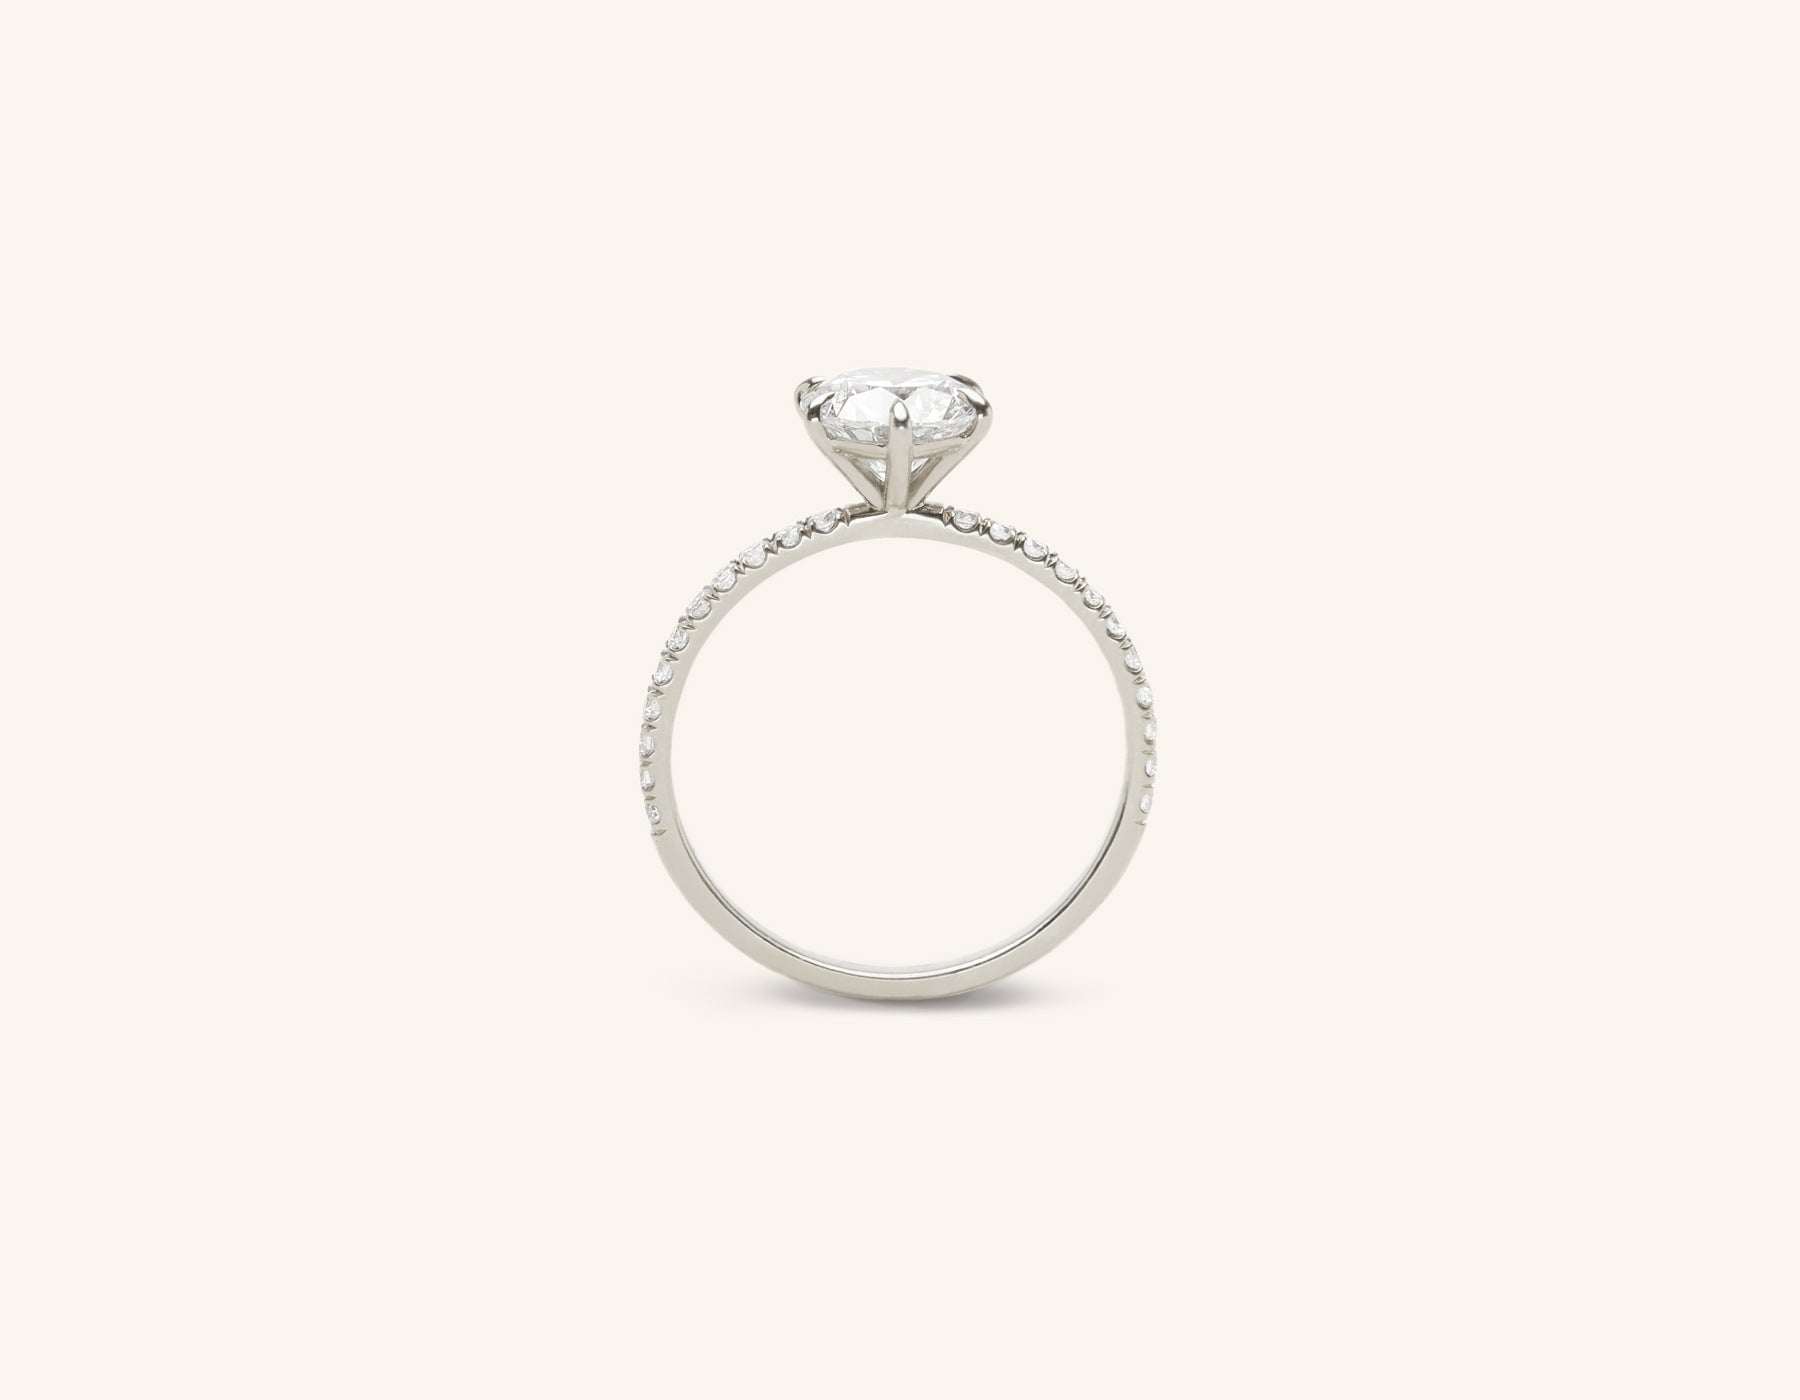 Vrai and Oro classic The Solitaire diamond pave engagement ring platinum sustainable jewelry